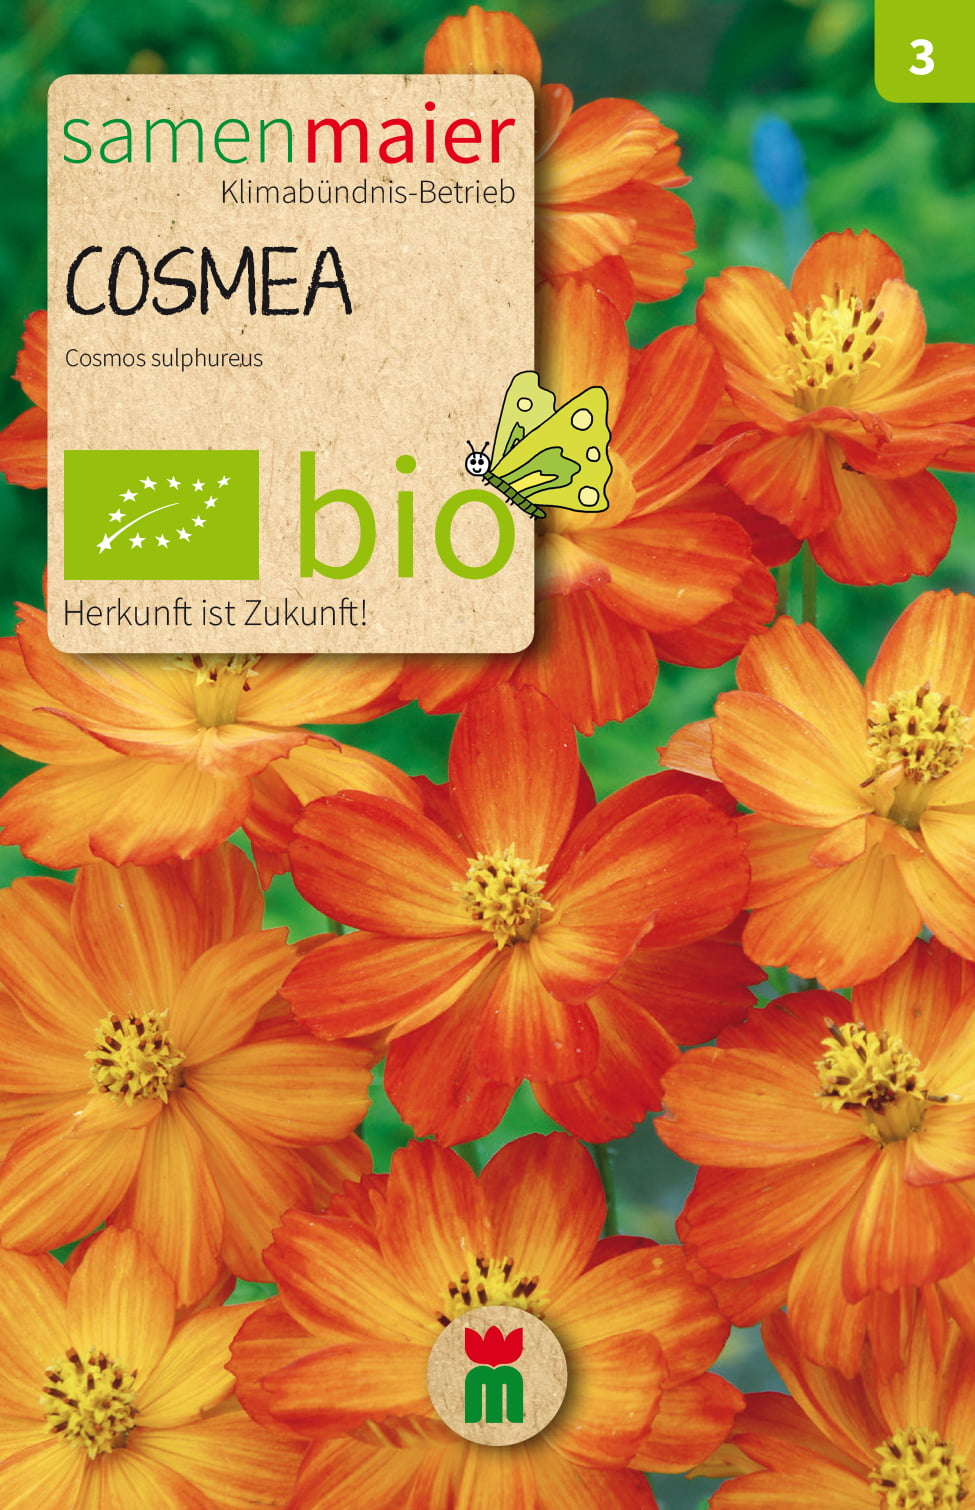 Cosmea Samen Samen Maier Organic Cosmea - Orange, 1 Package - Bloomling Uk